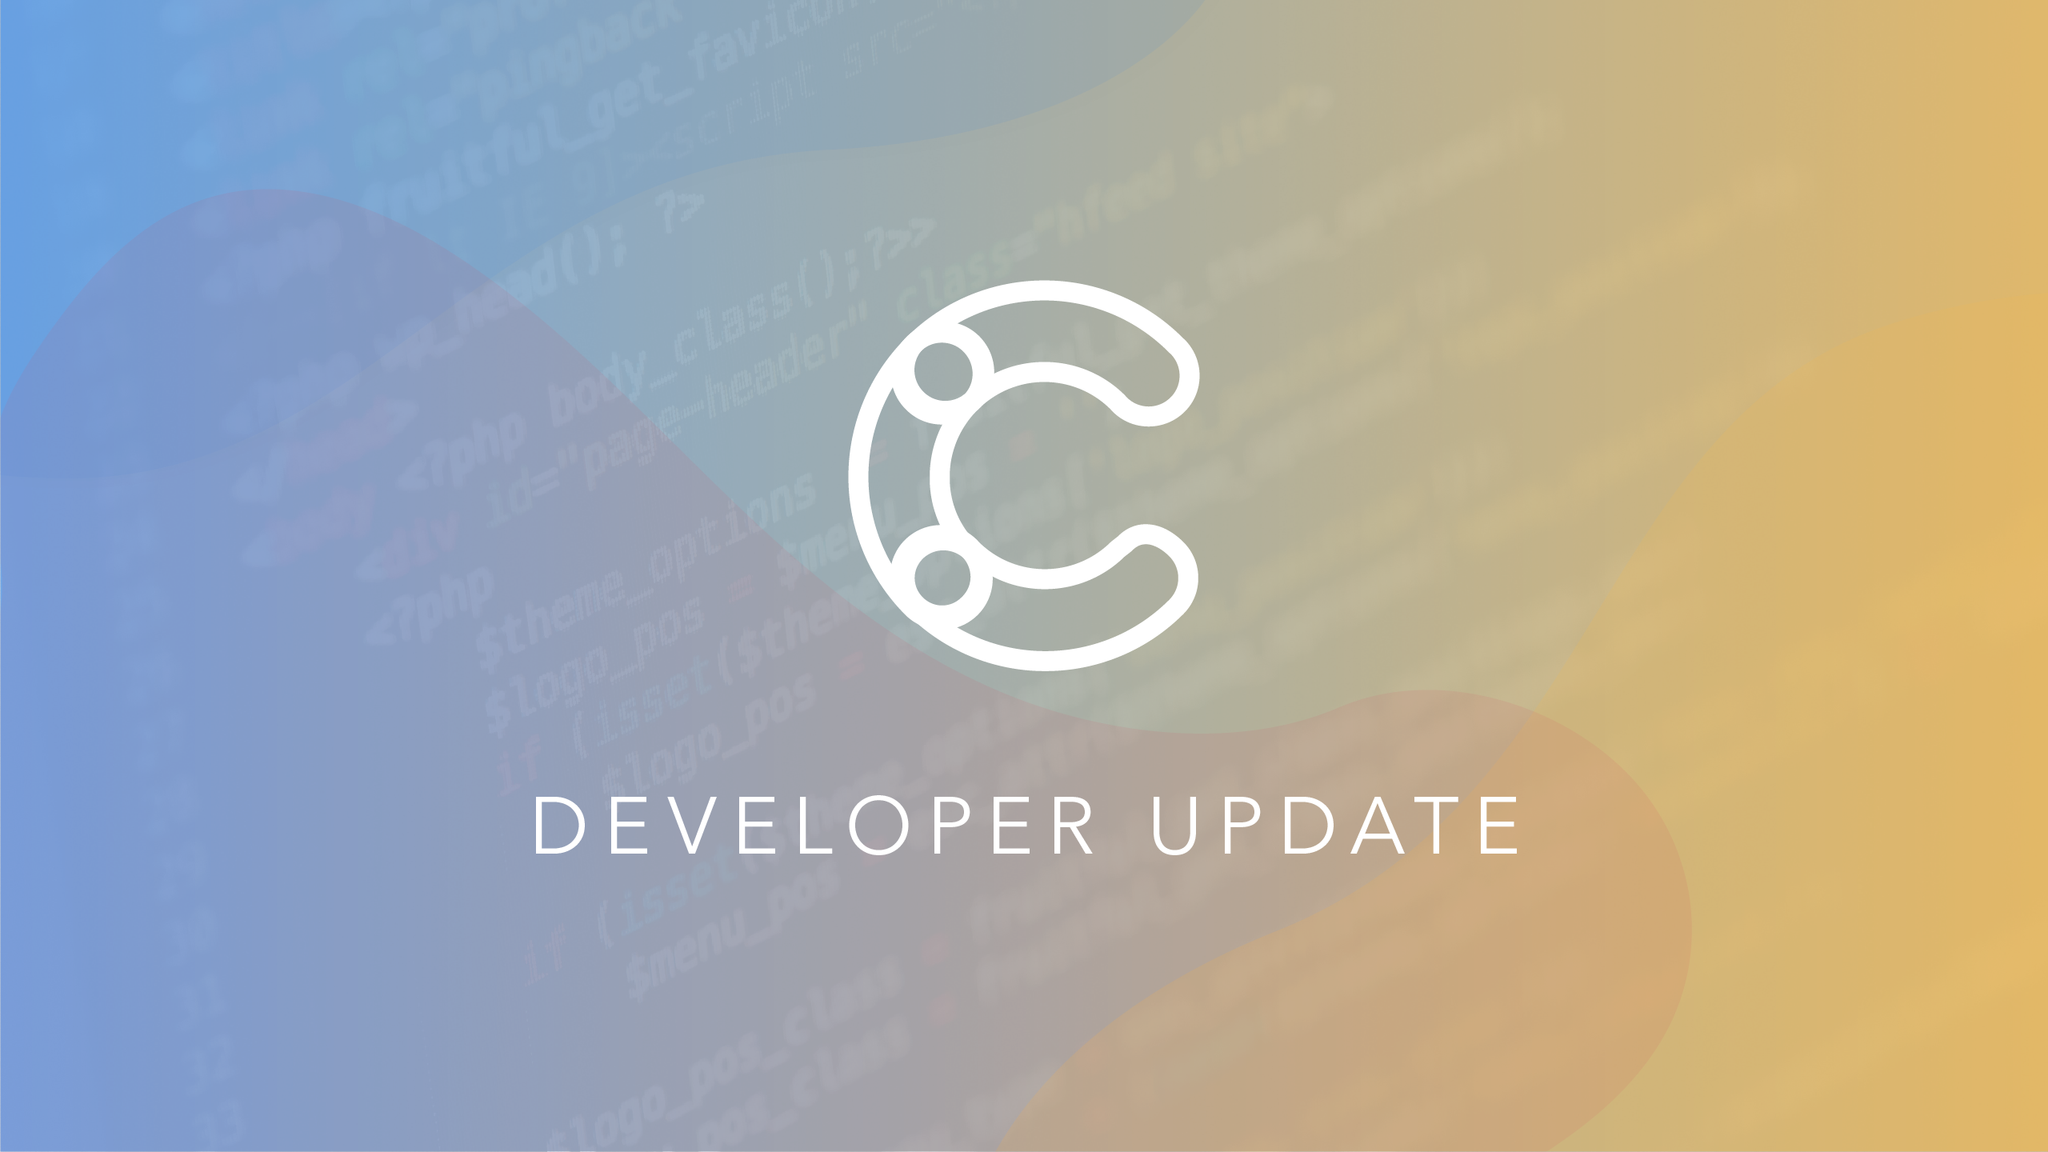 201811 developer update asset